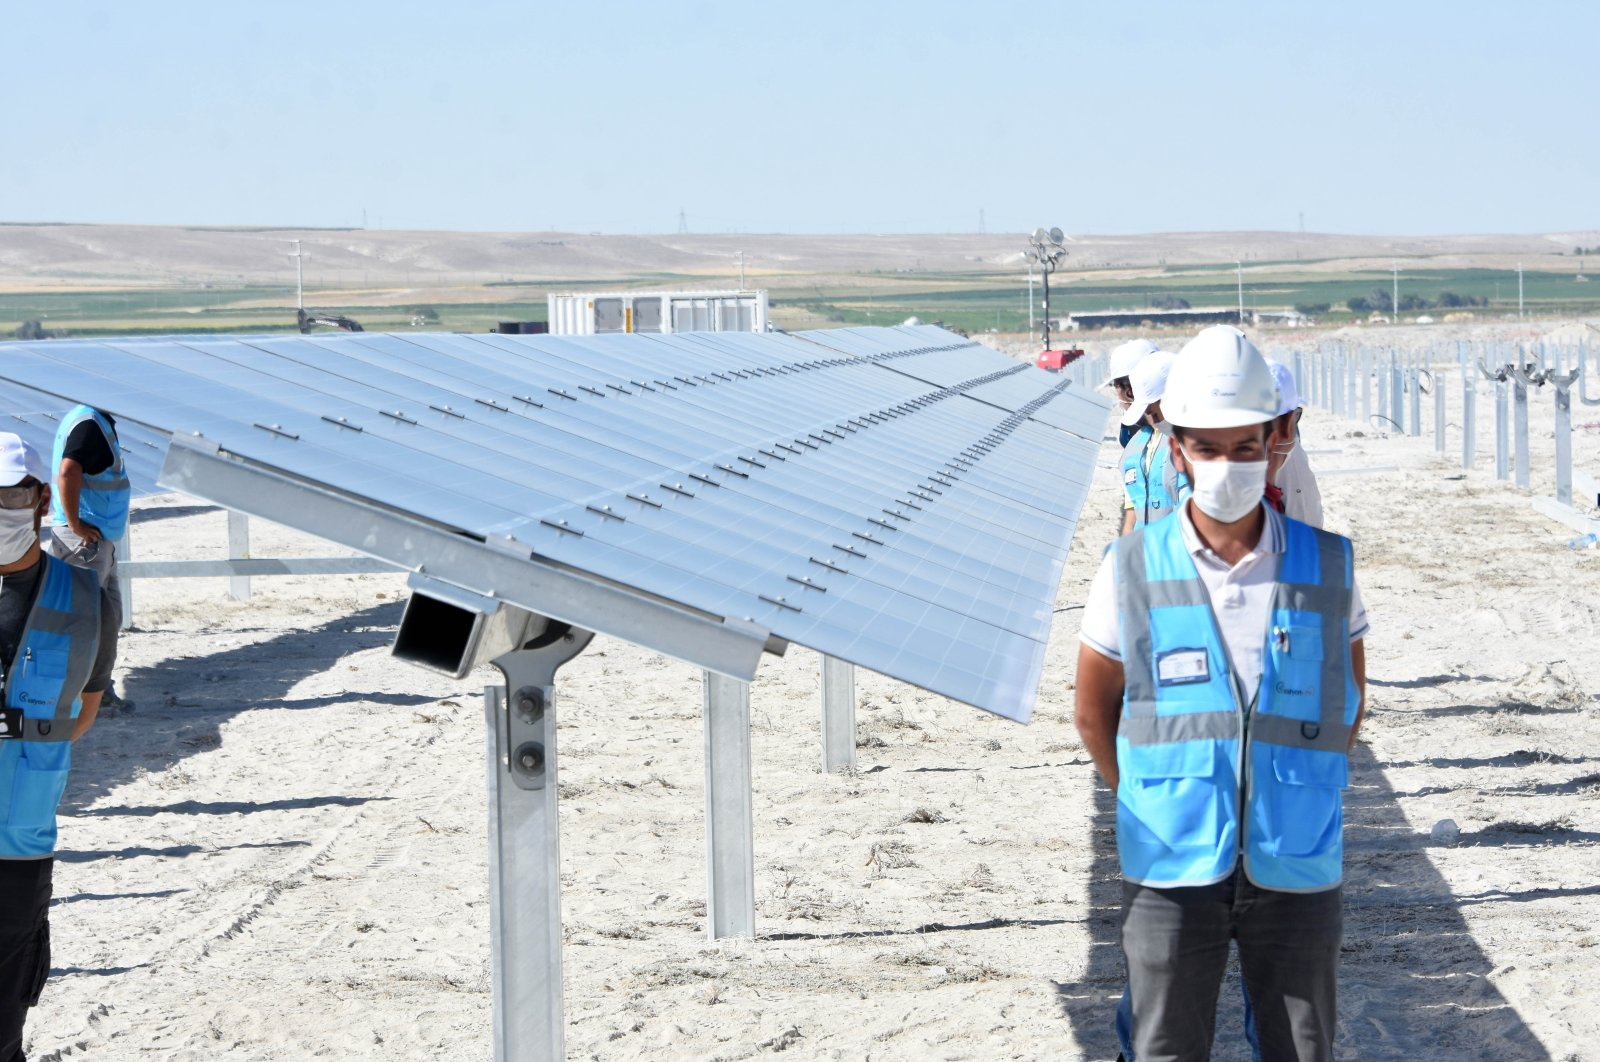 Workers stand by the solar panels in central Turkey's Karapınar SSP during the inauguration ceremony on Aug. 19, 2020. (DHA Photo)